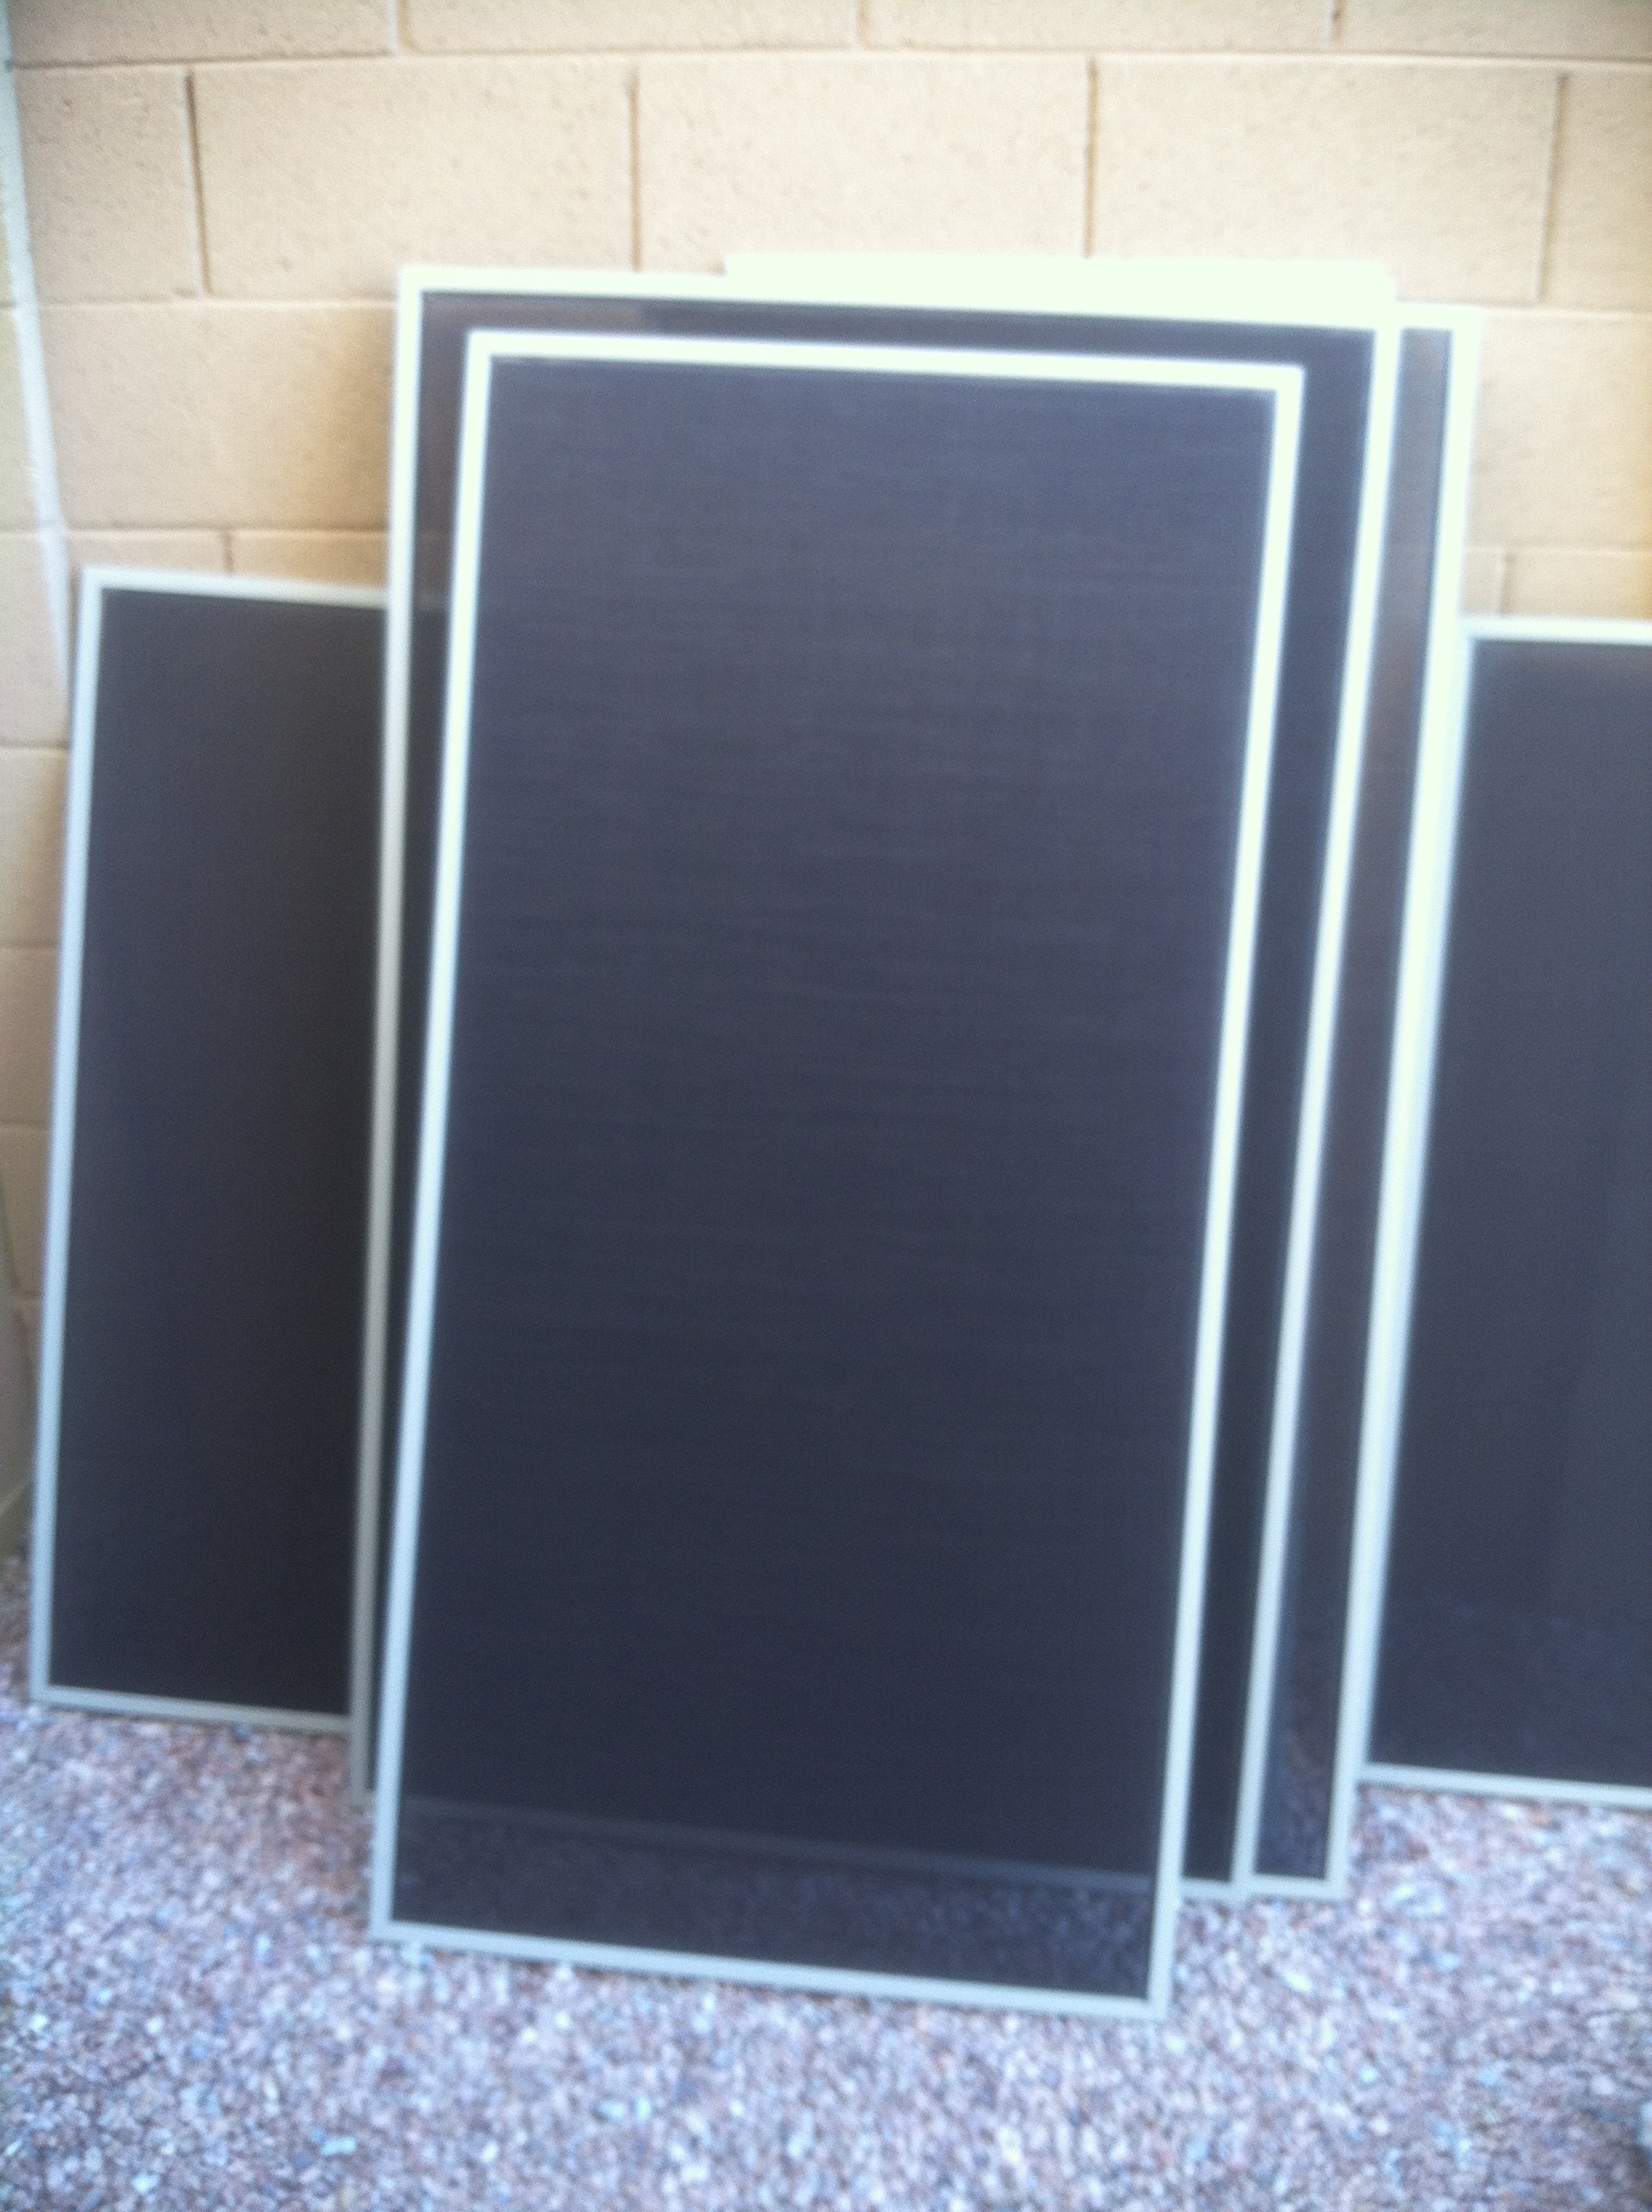 Screens for house windows 28 images window screens for House window screens